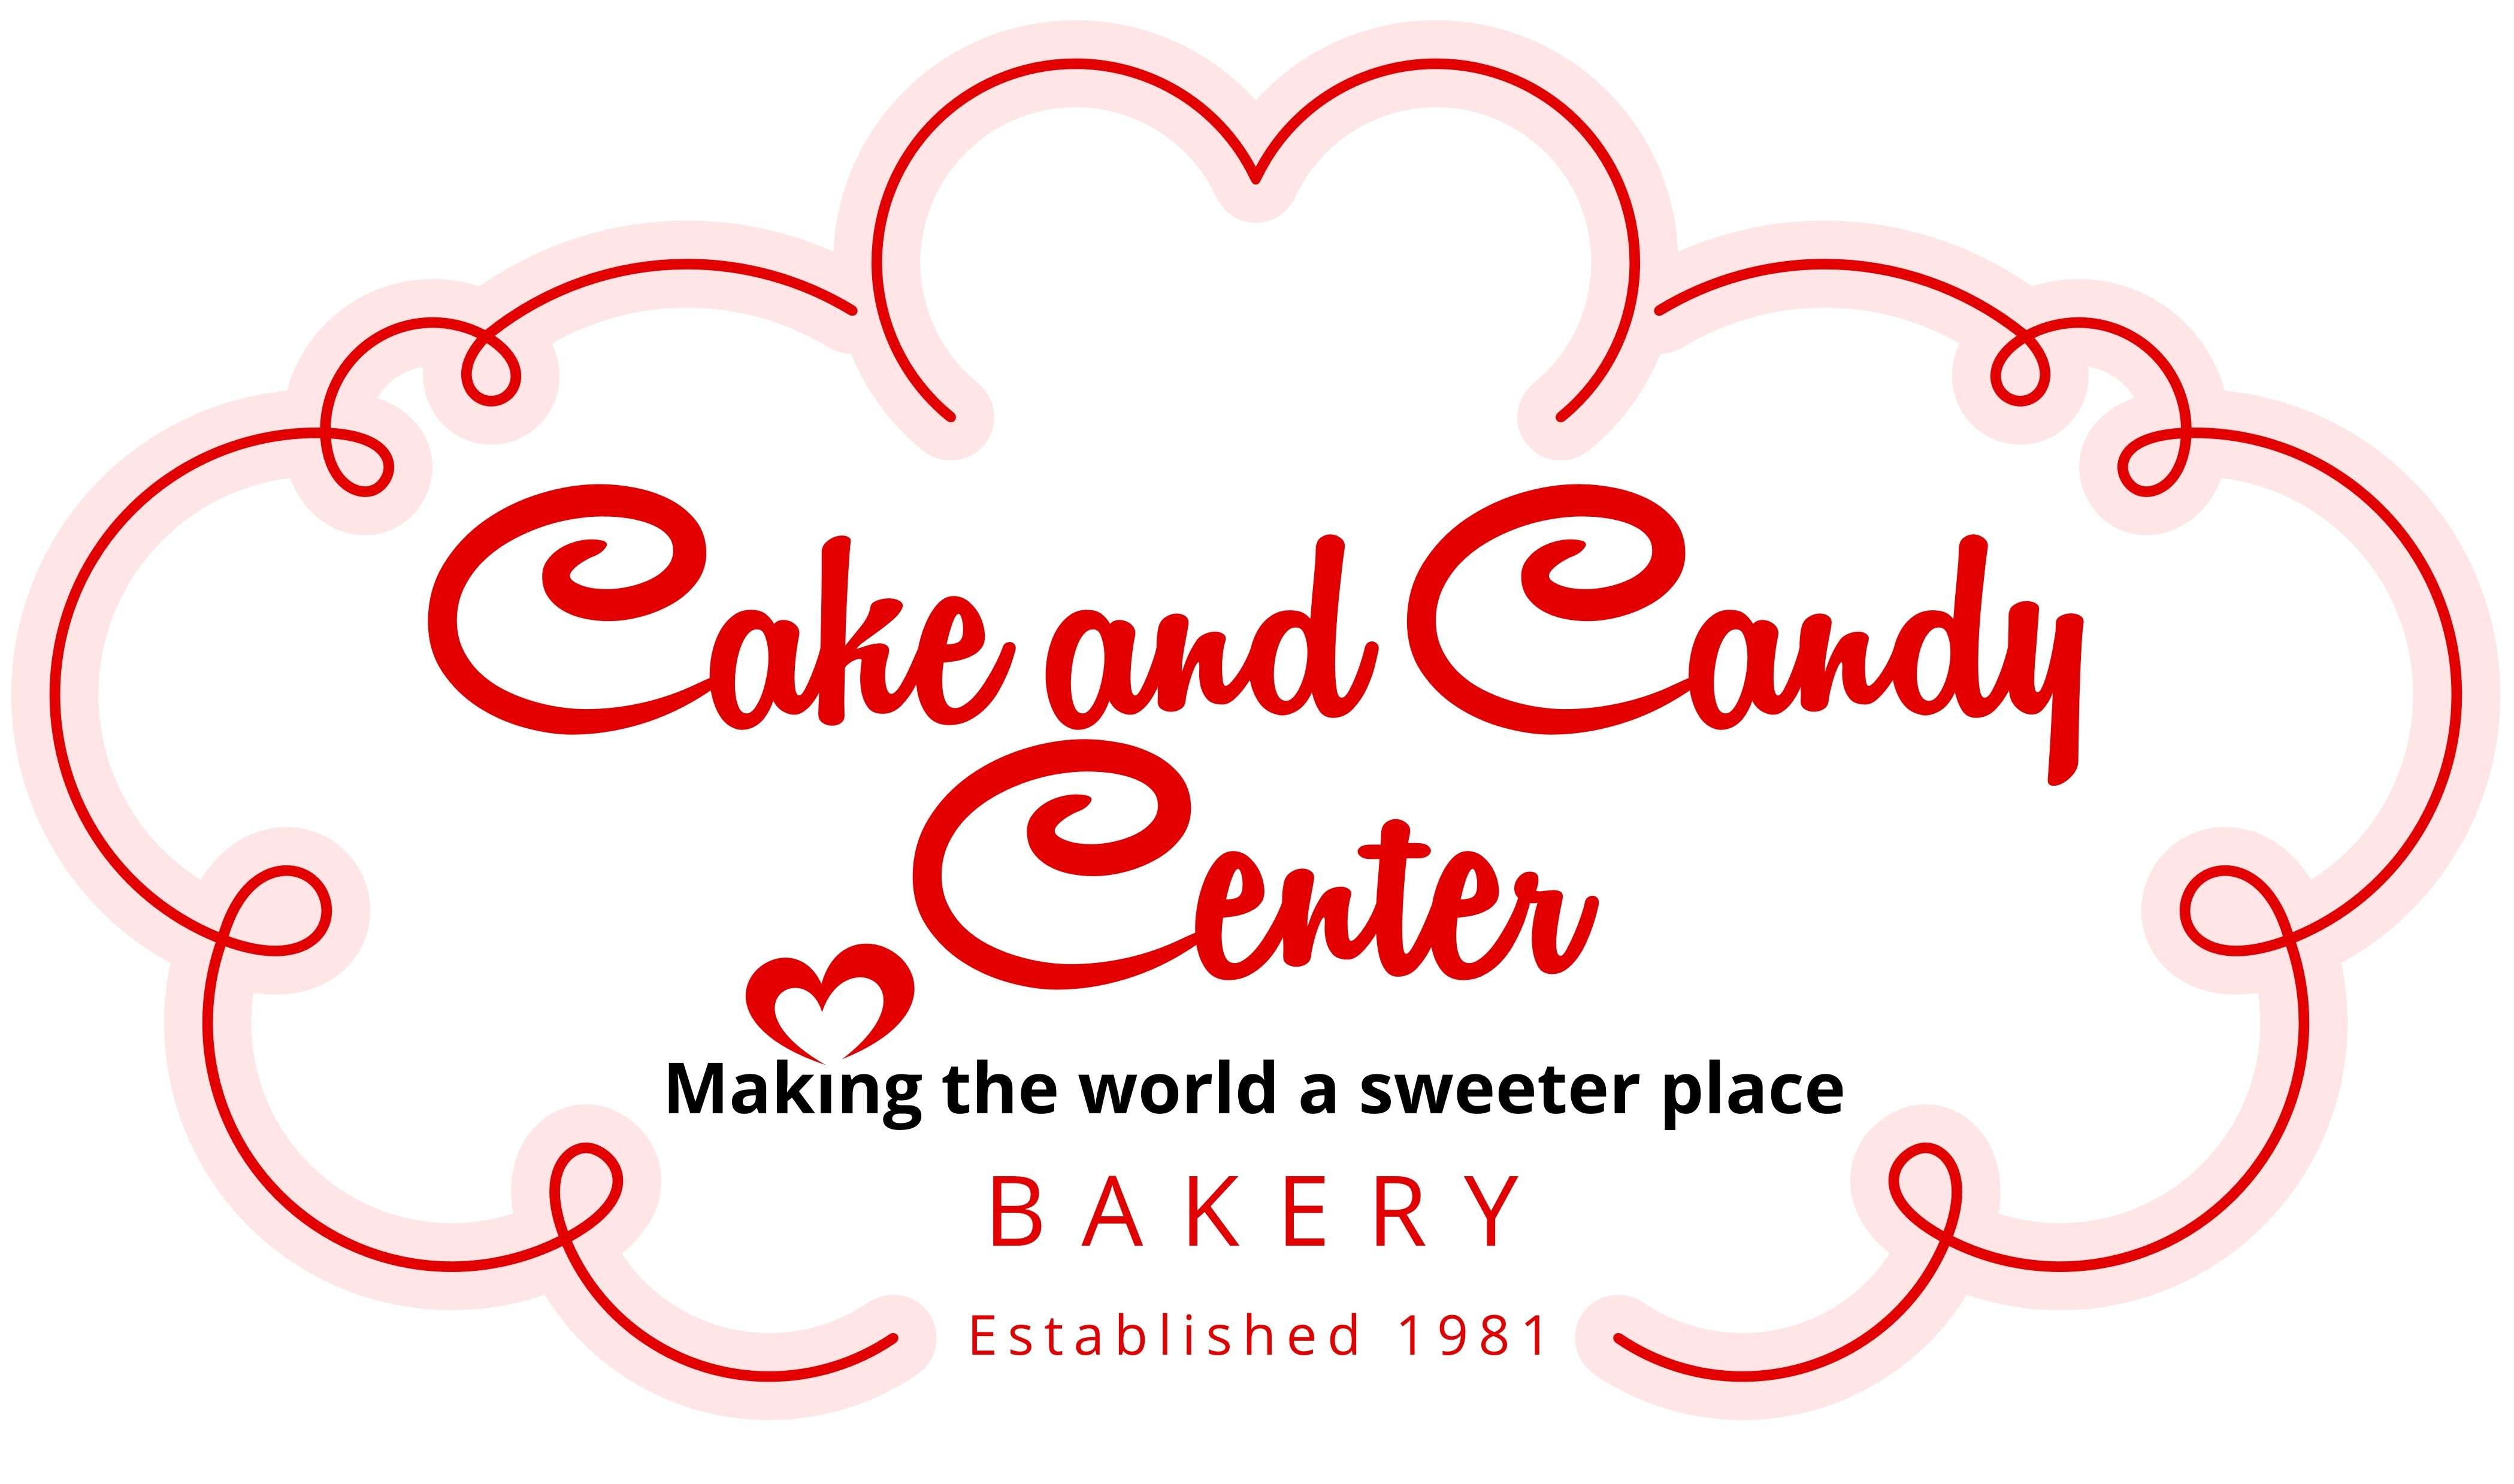 Cake and Candy Center, Inc.